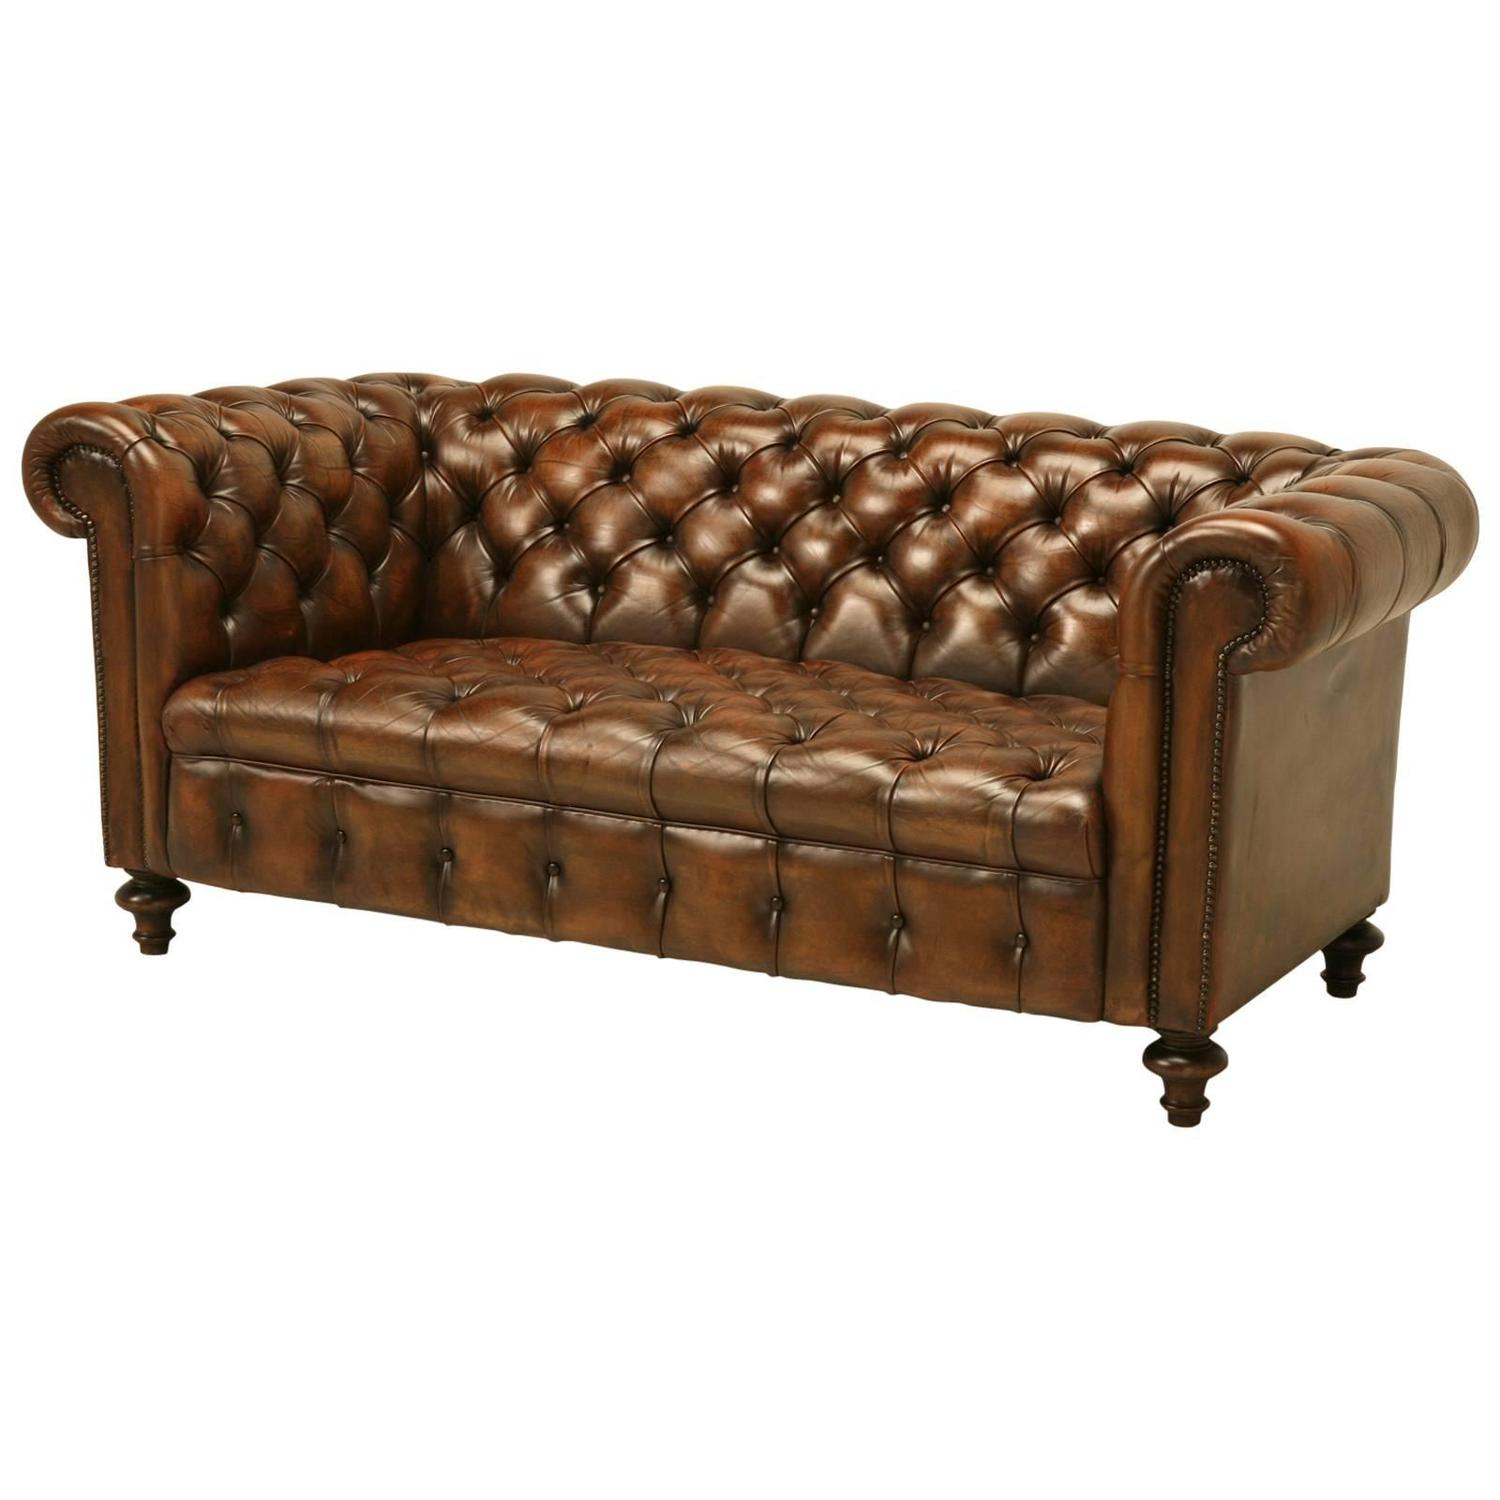 English leather chesterfield sofa at 1stdibs for Divan furniture